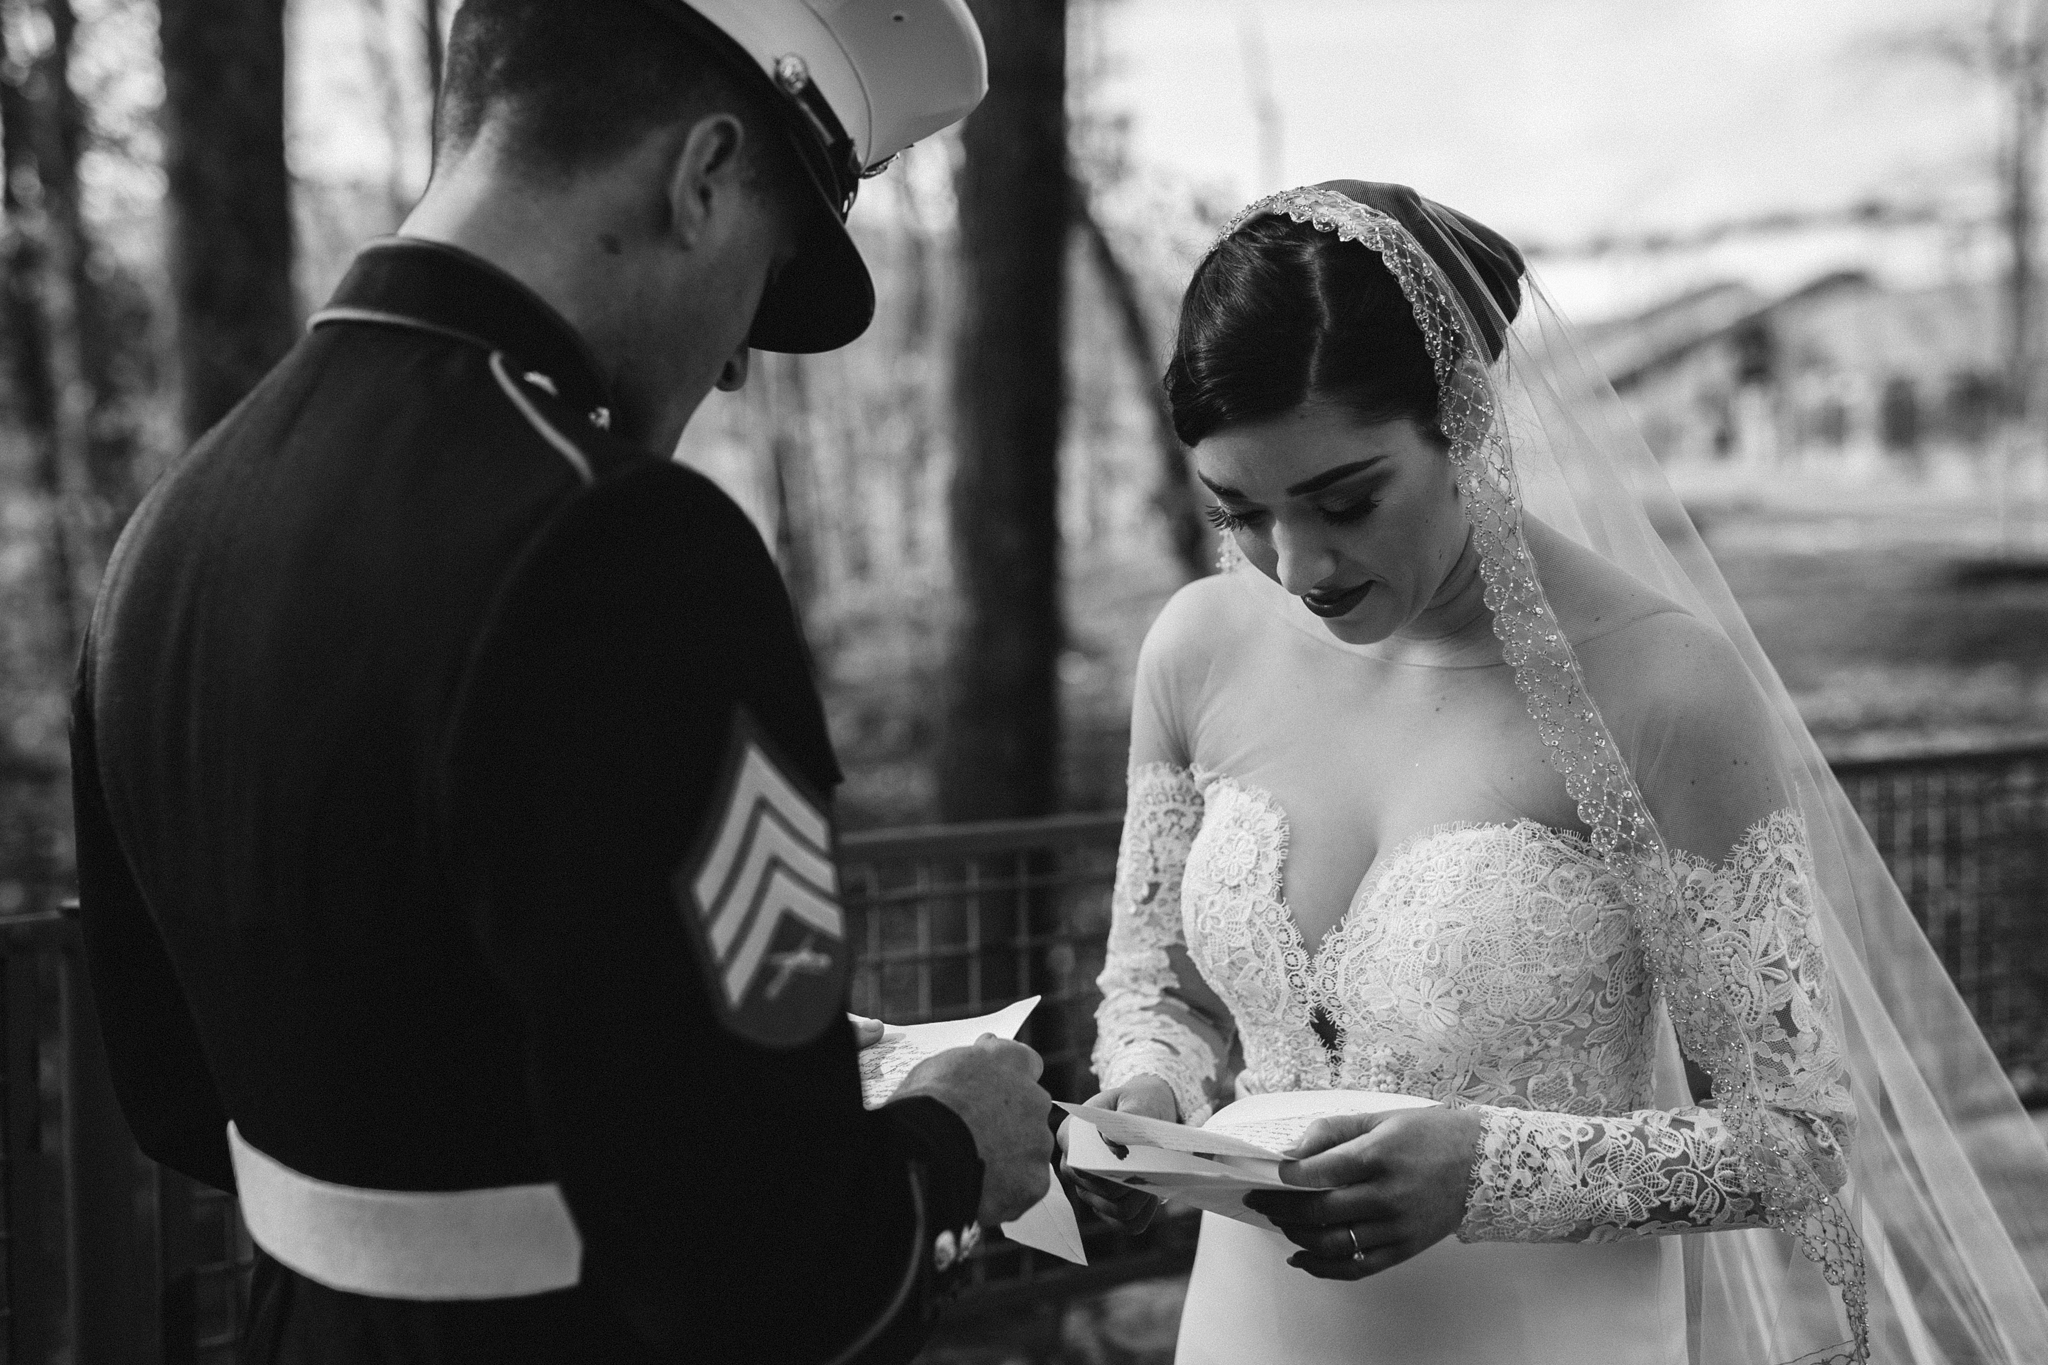 solinsky_wedding_national_museum_of_marine_corp-8.jpg